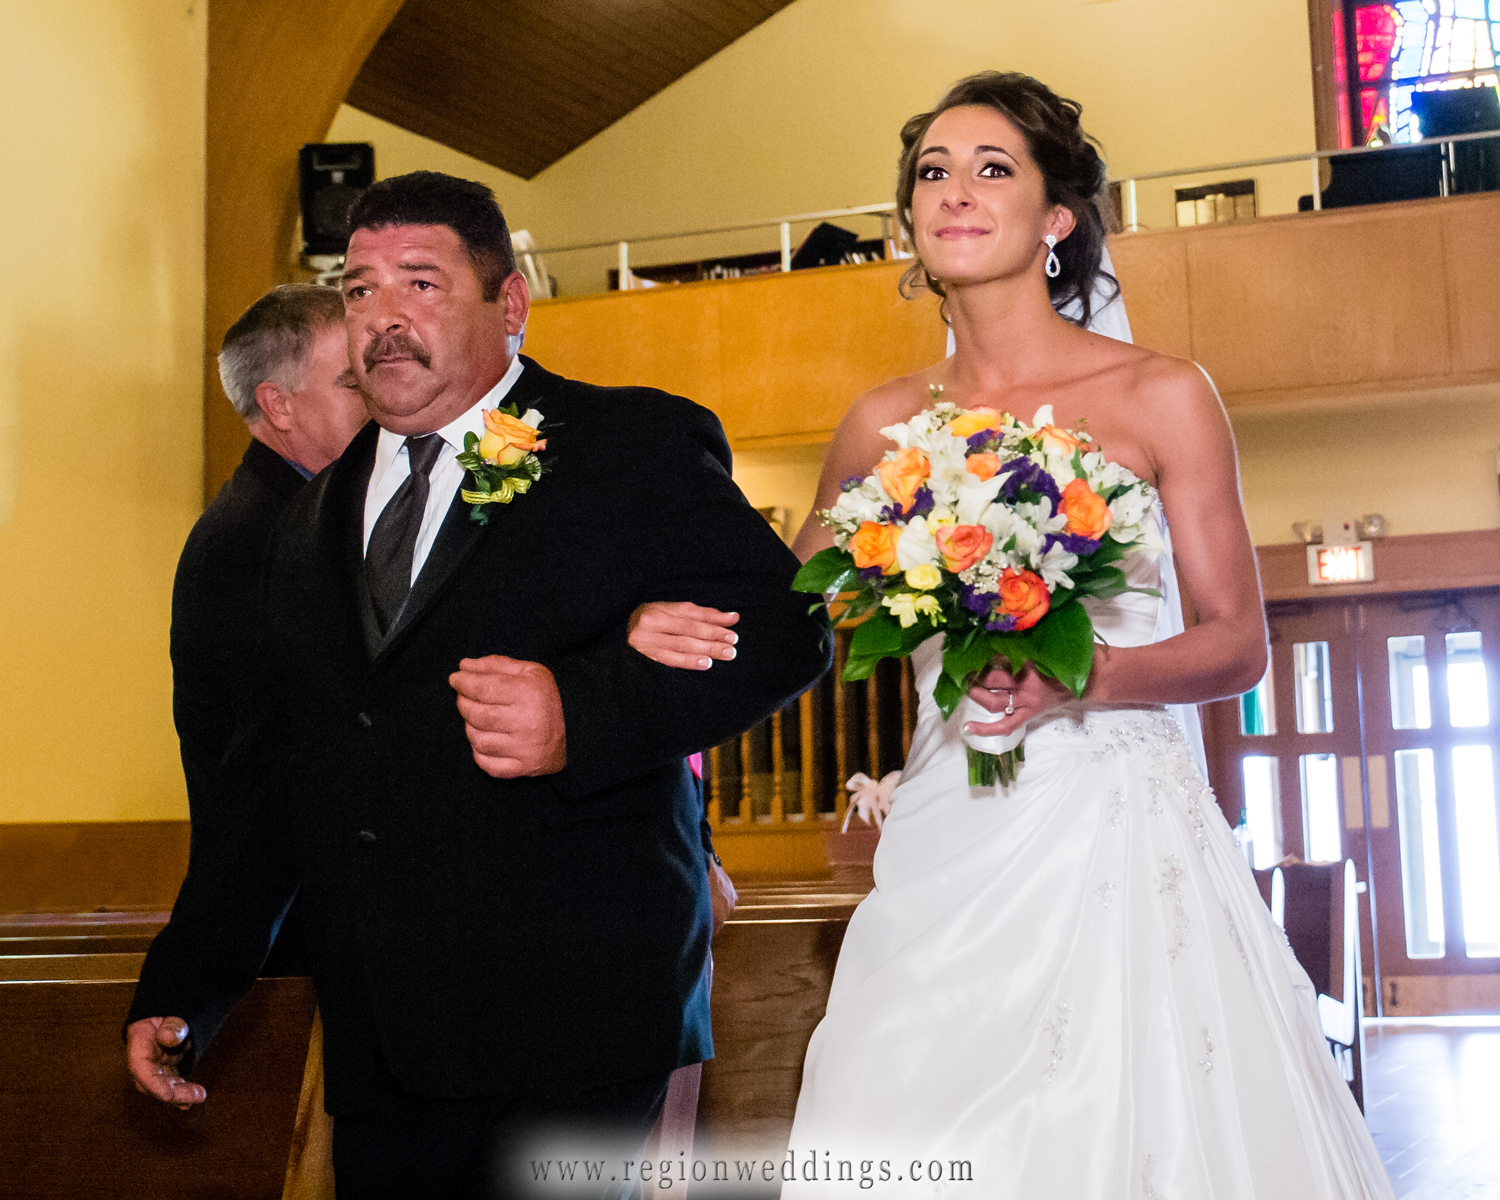 The father of the bride walks his daughter down the aisle at the Parish of St. Joseph in Homewood, Illinois.